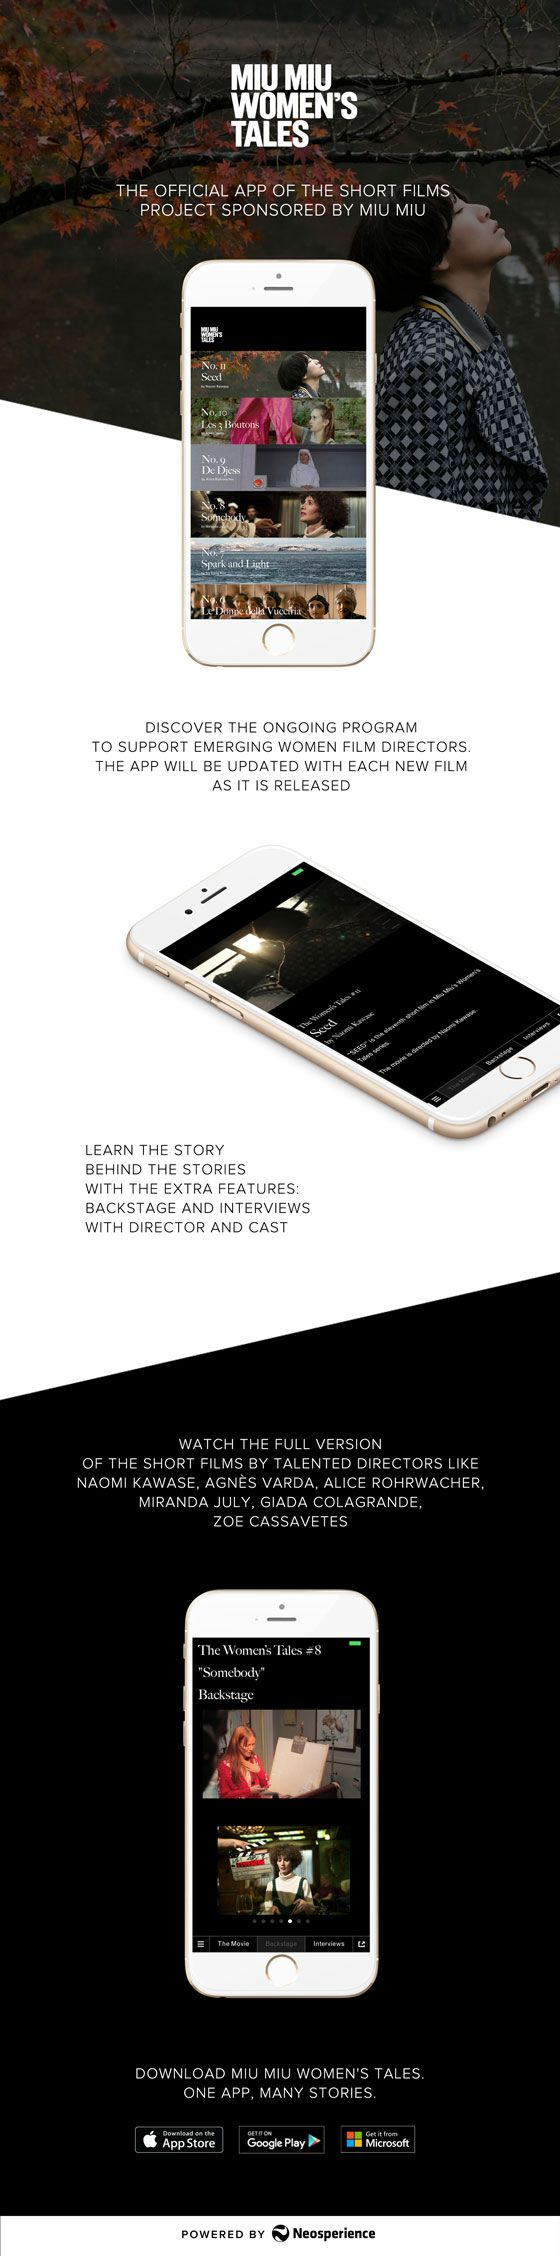 Miu Miu Women's Tales is the official App, powered by Neosperience, of the ongoing project to support emerging female directors.